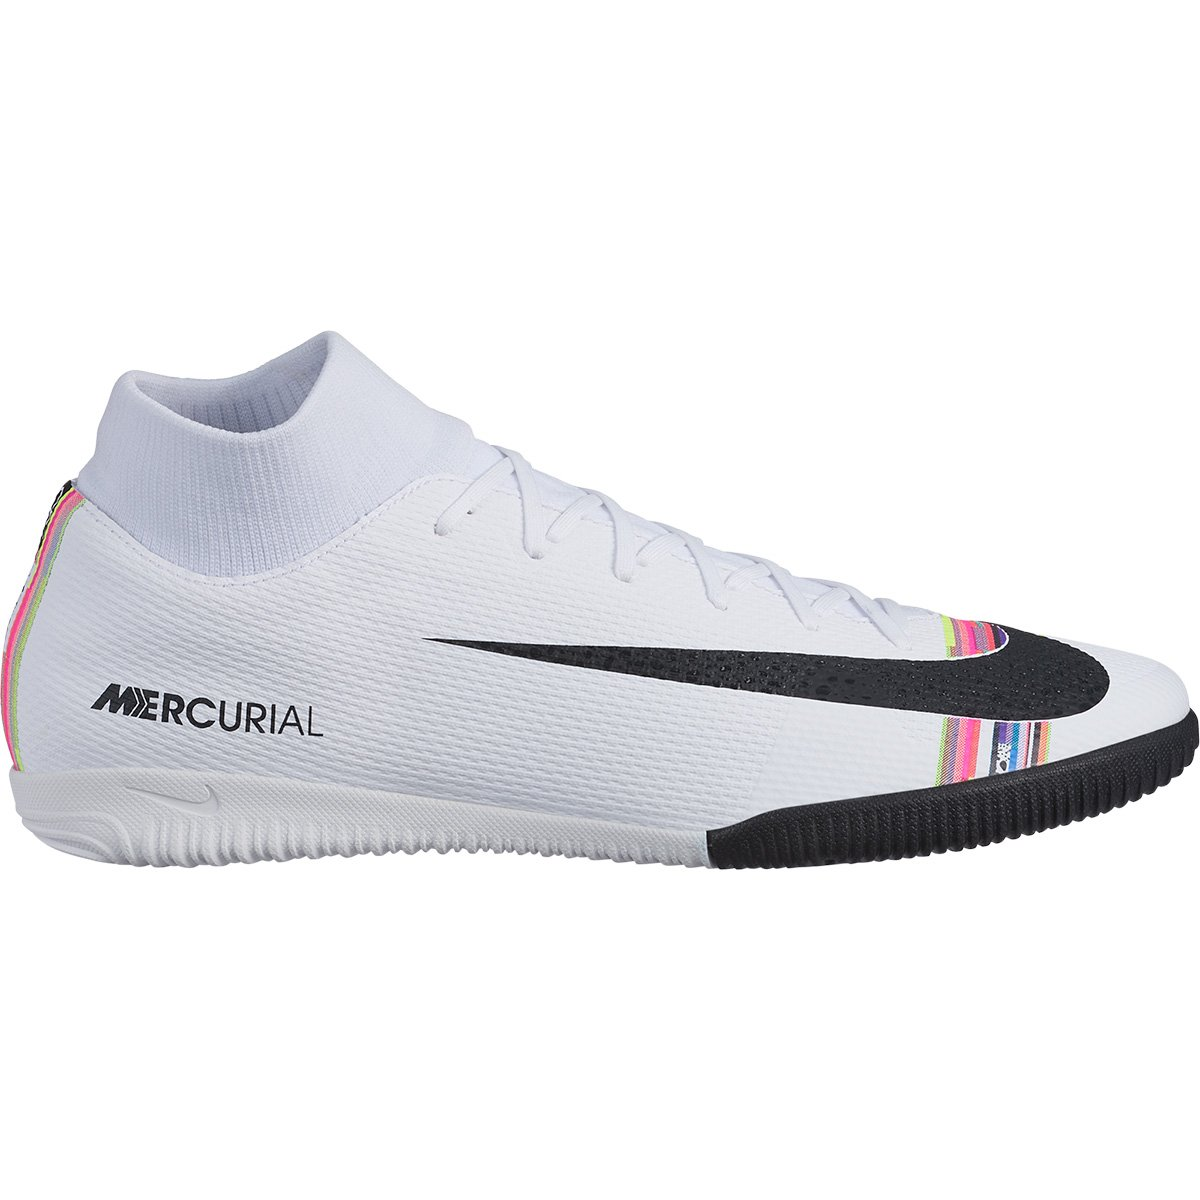 the best attitude 3bbed ecab8 Chuteira Futsal Nike Mercurial Superfly 6 Academy CR7 IC - Branco e Preto